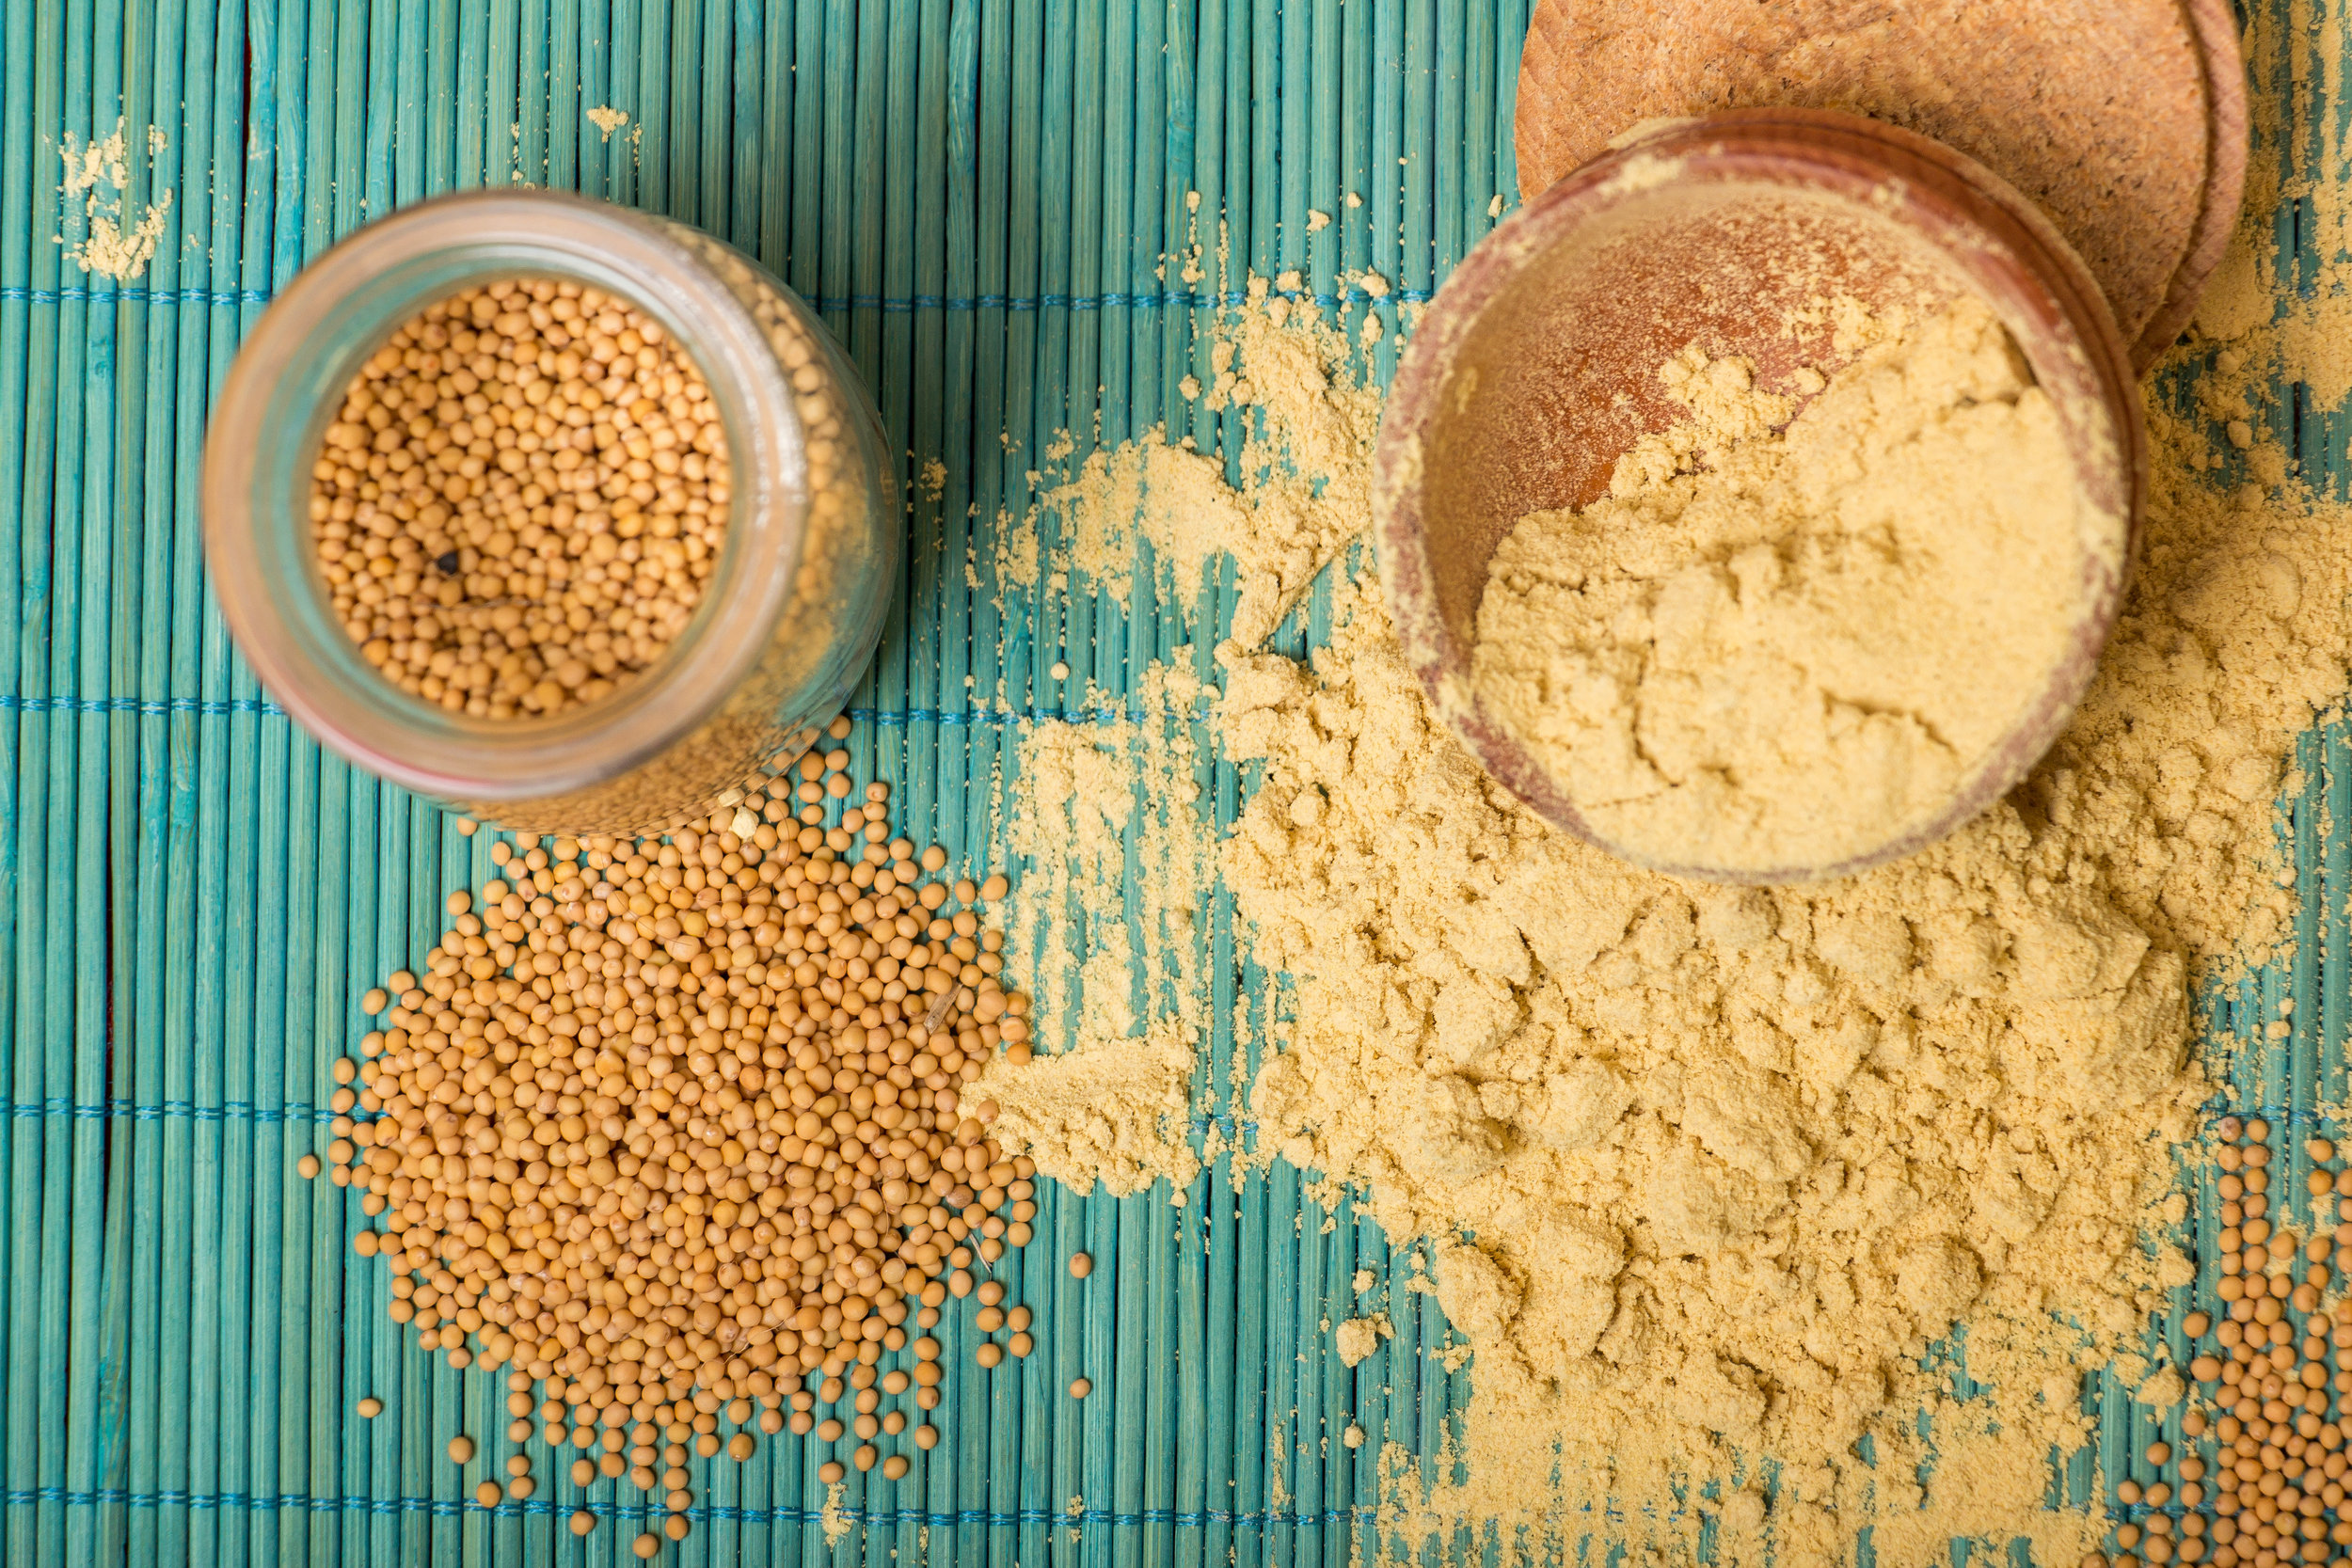 Is chest congestion bringing you down? This simple DIY Mustard Seed Pack recipe is a great natural alternative to help ease congestion to help you feel better quickly!